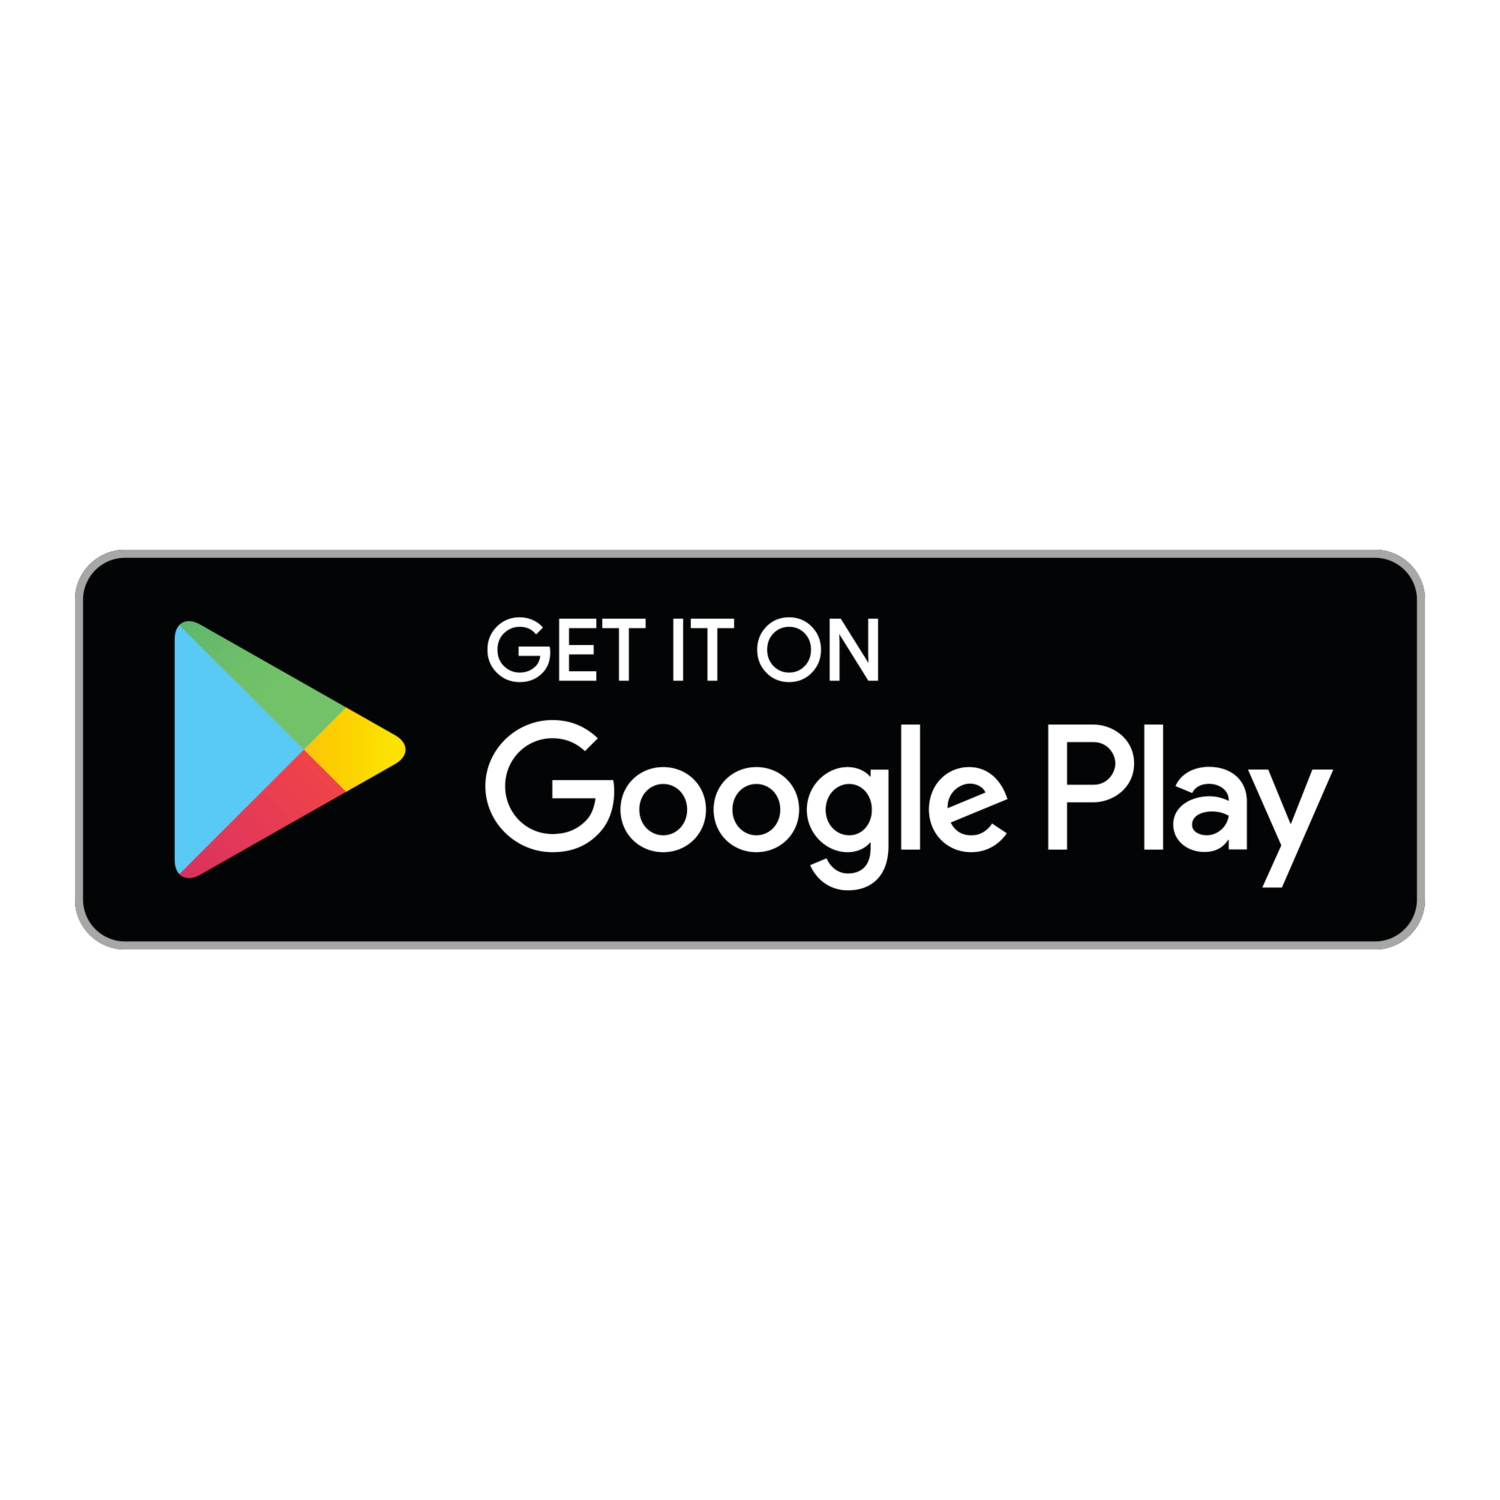 Download google play clipart graphic free download Google Play App Store Android - wallets png download - 1500*1500 ... graphic free download